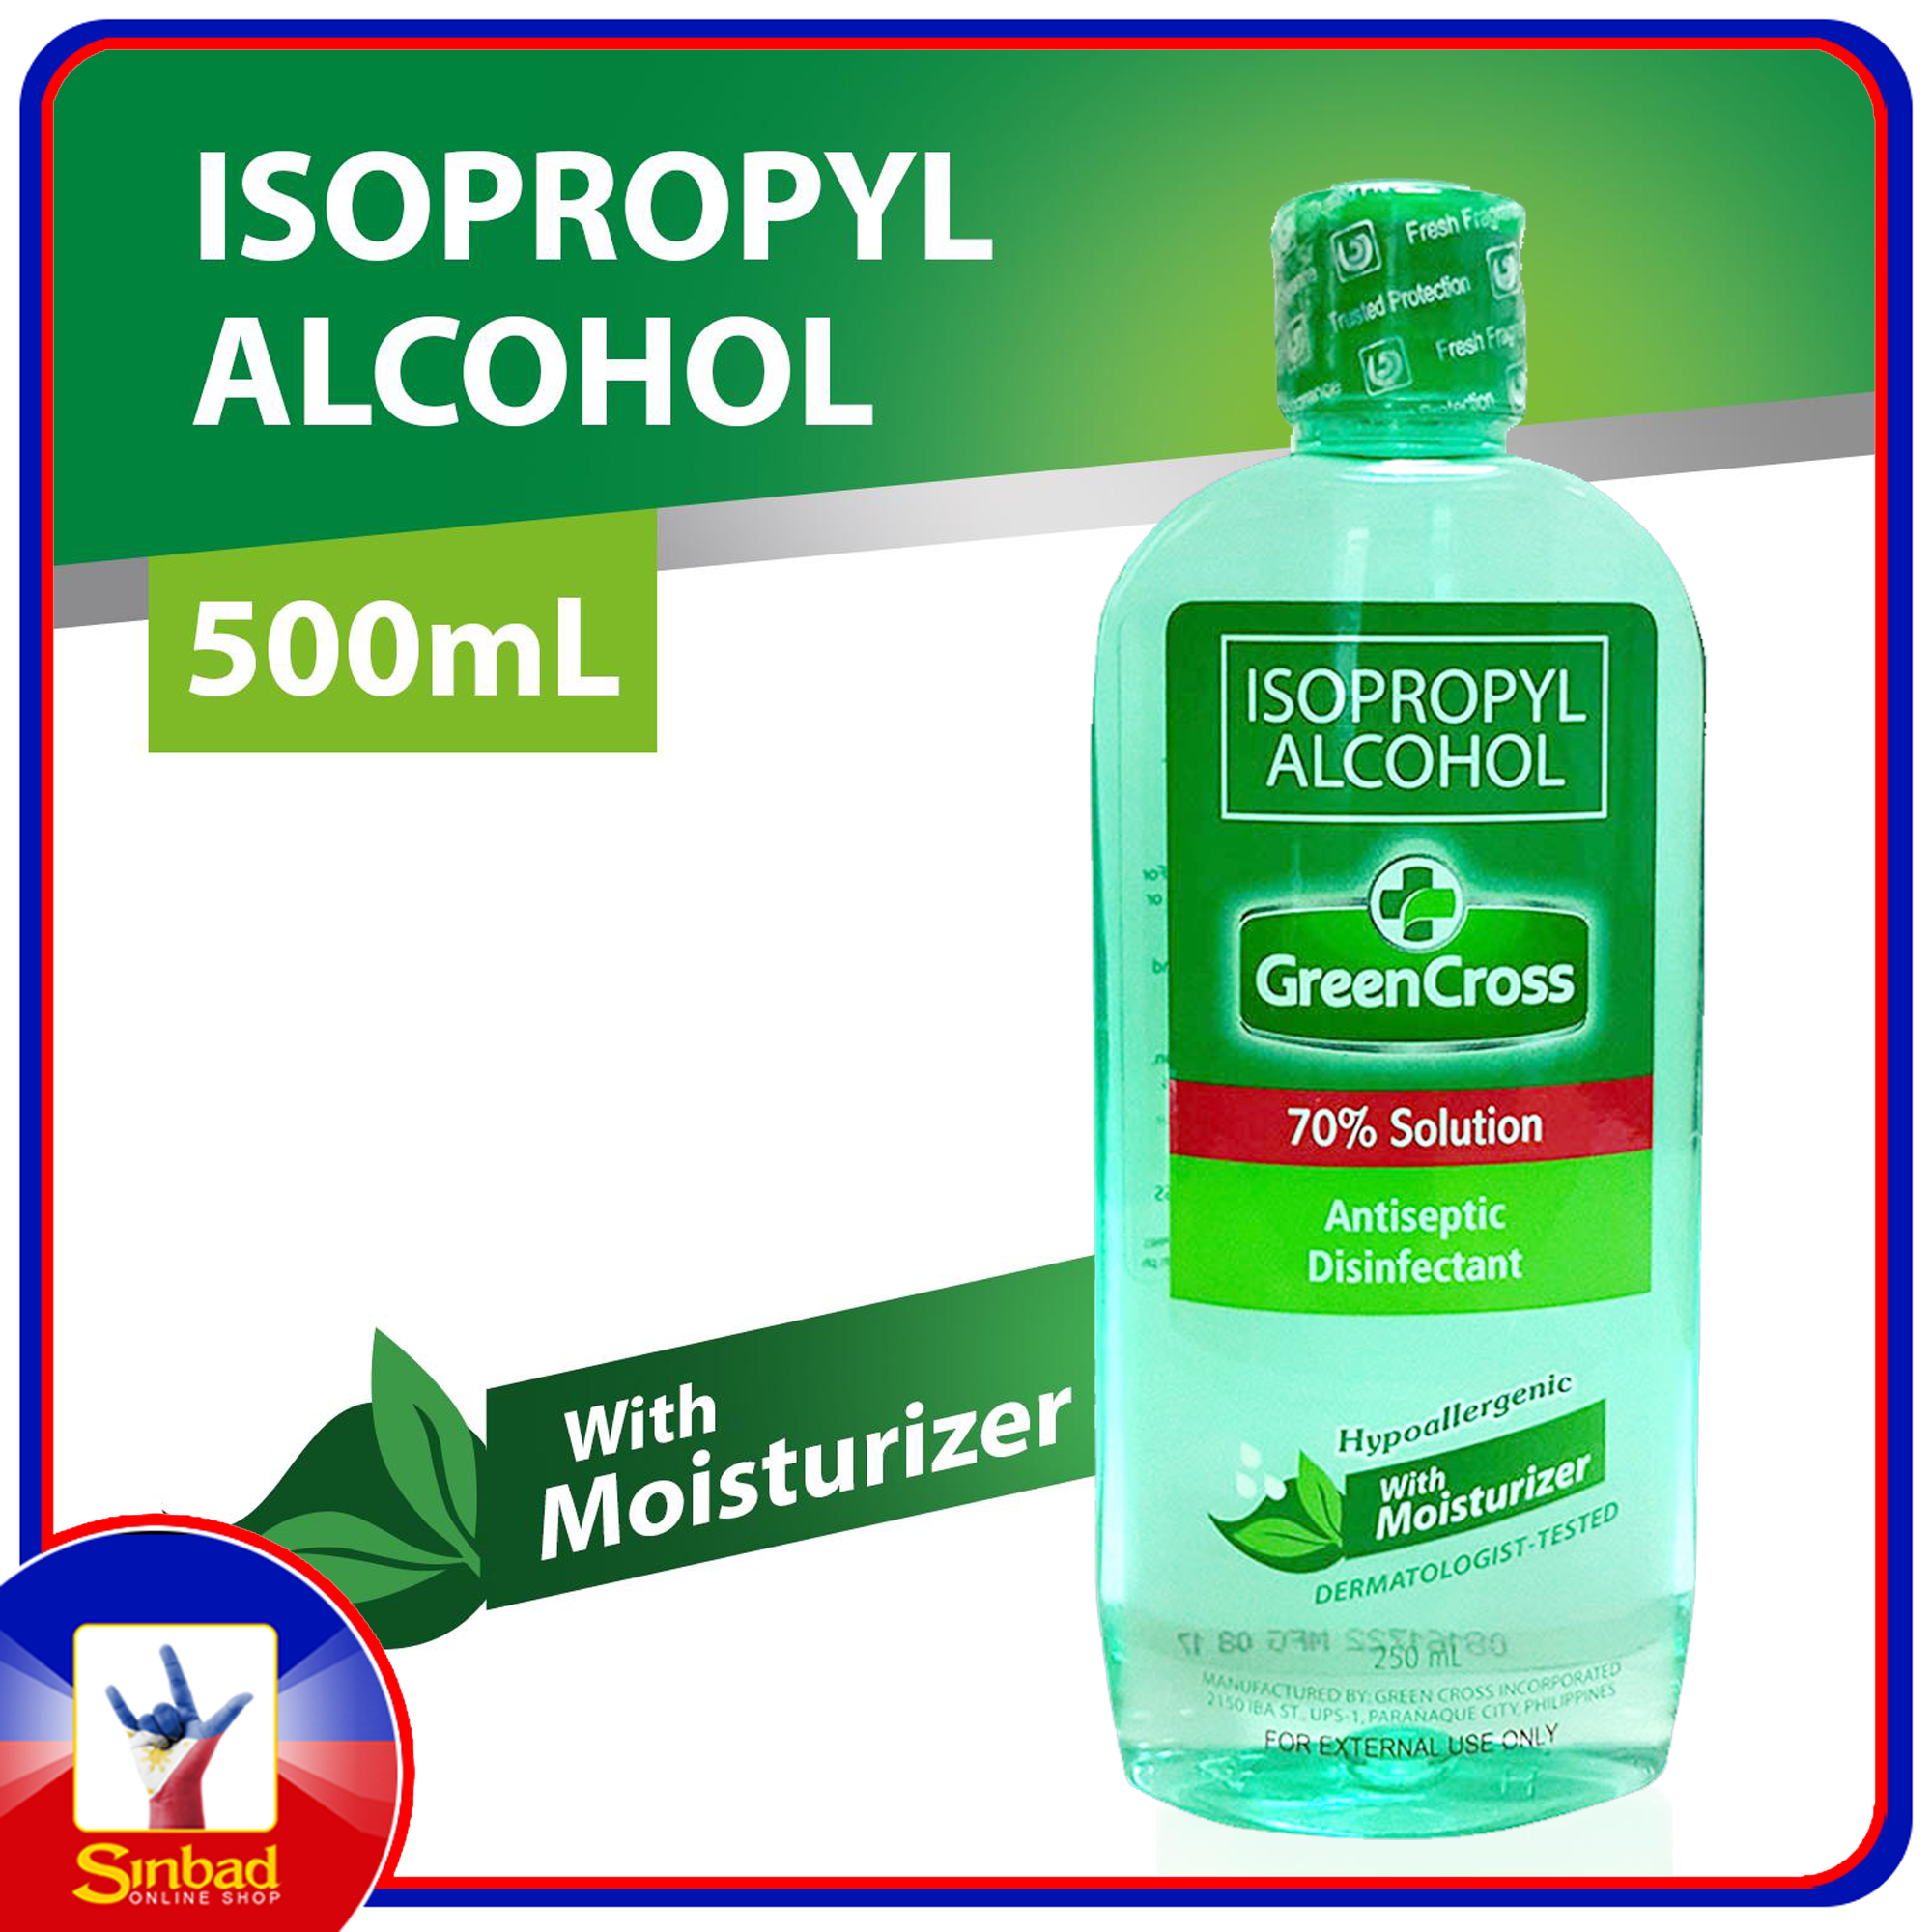 Green Cross Isopropyl Alcohol 70% Solution With Moisturizer, 500ml